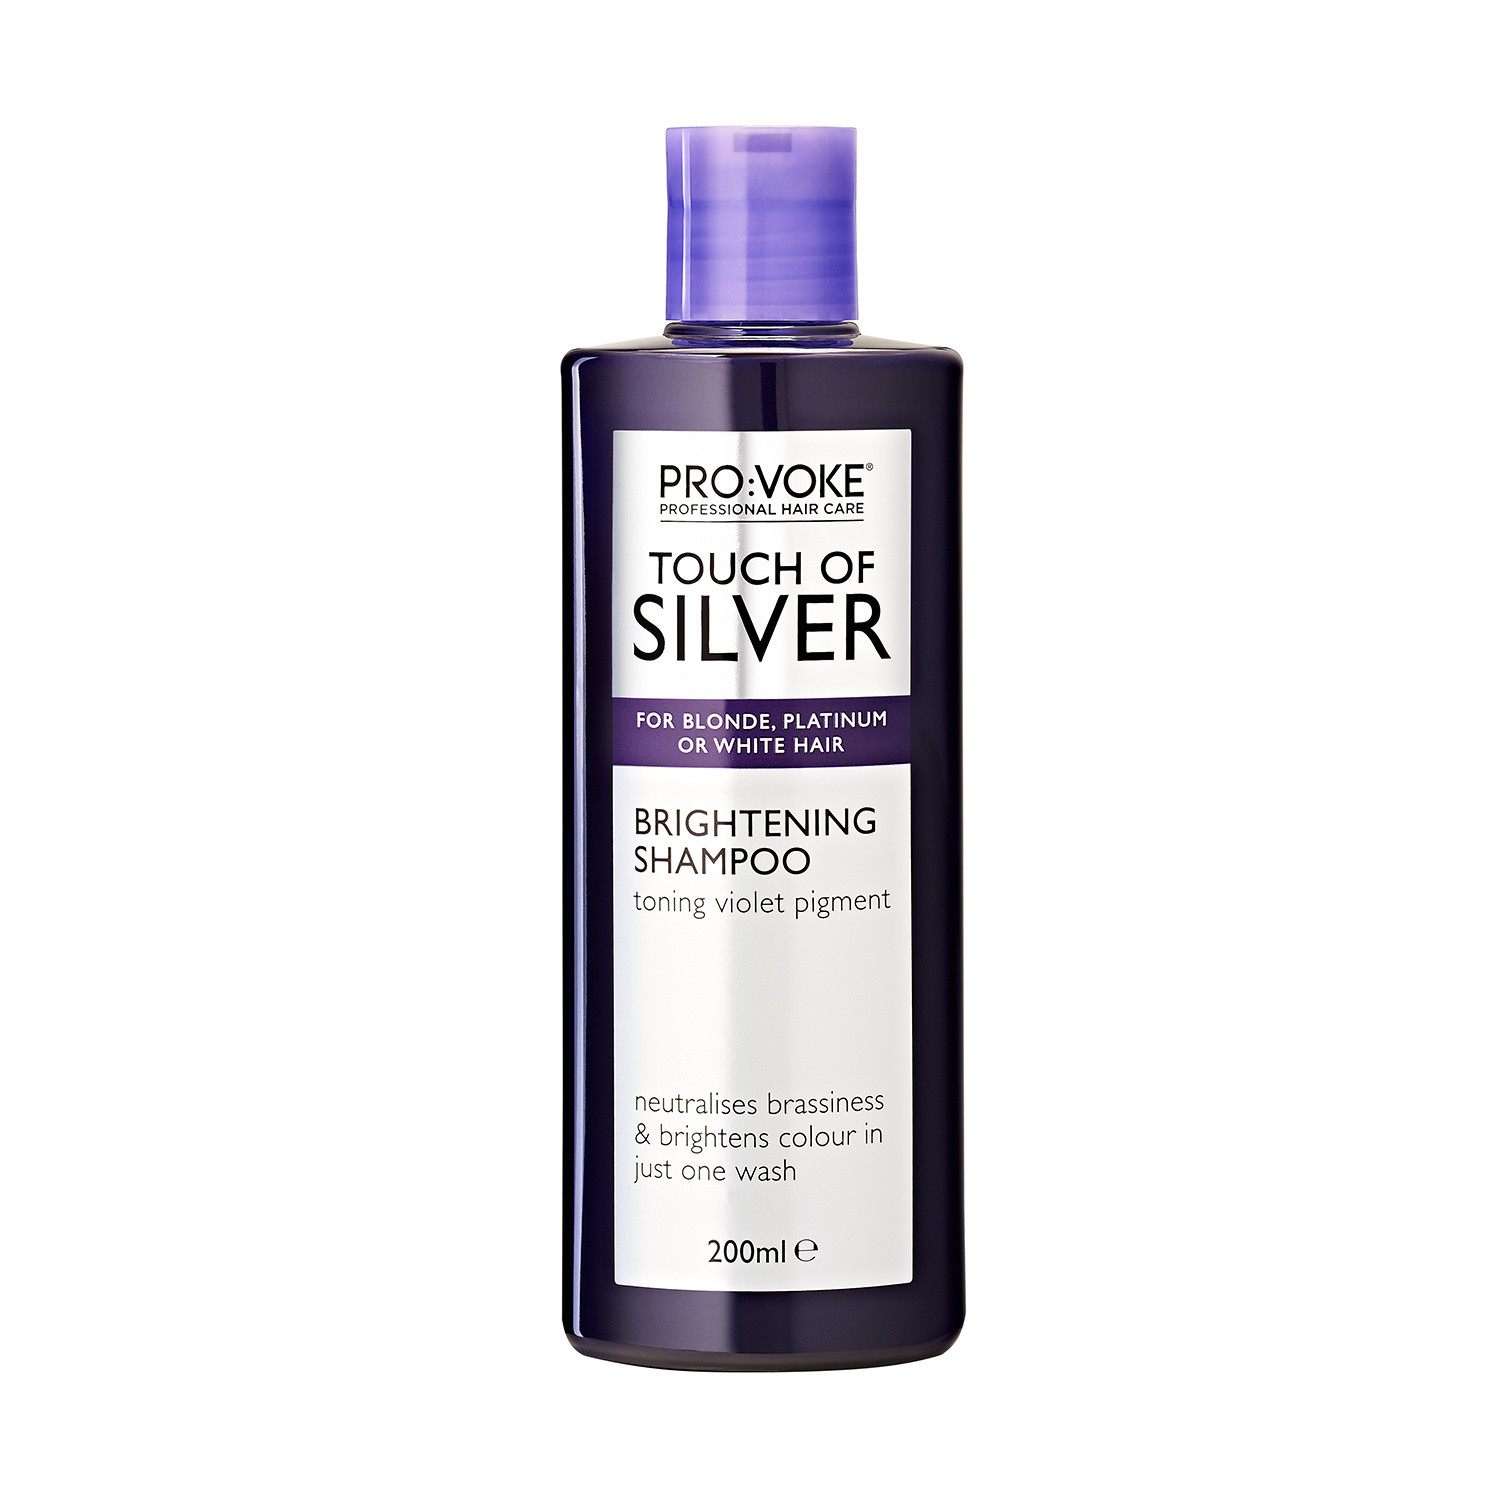 PRO:VOKE Touch of Silver Brightening Shampoo 200ml